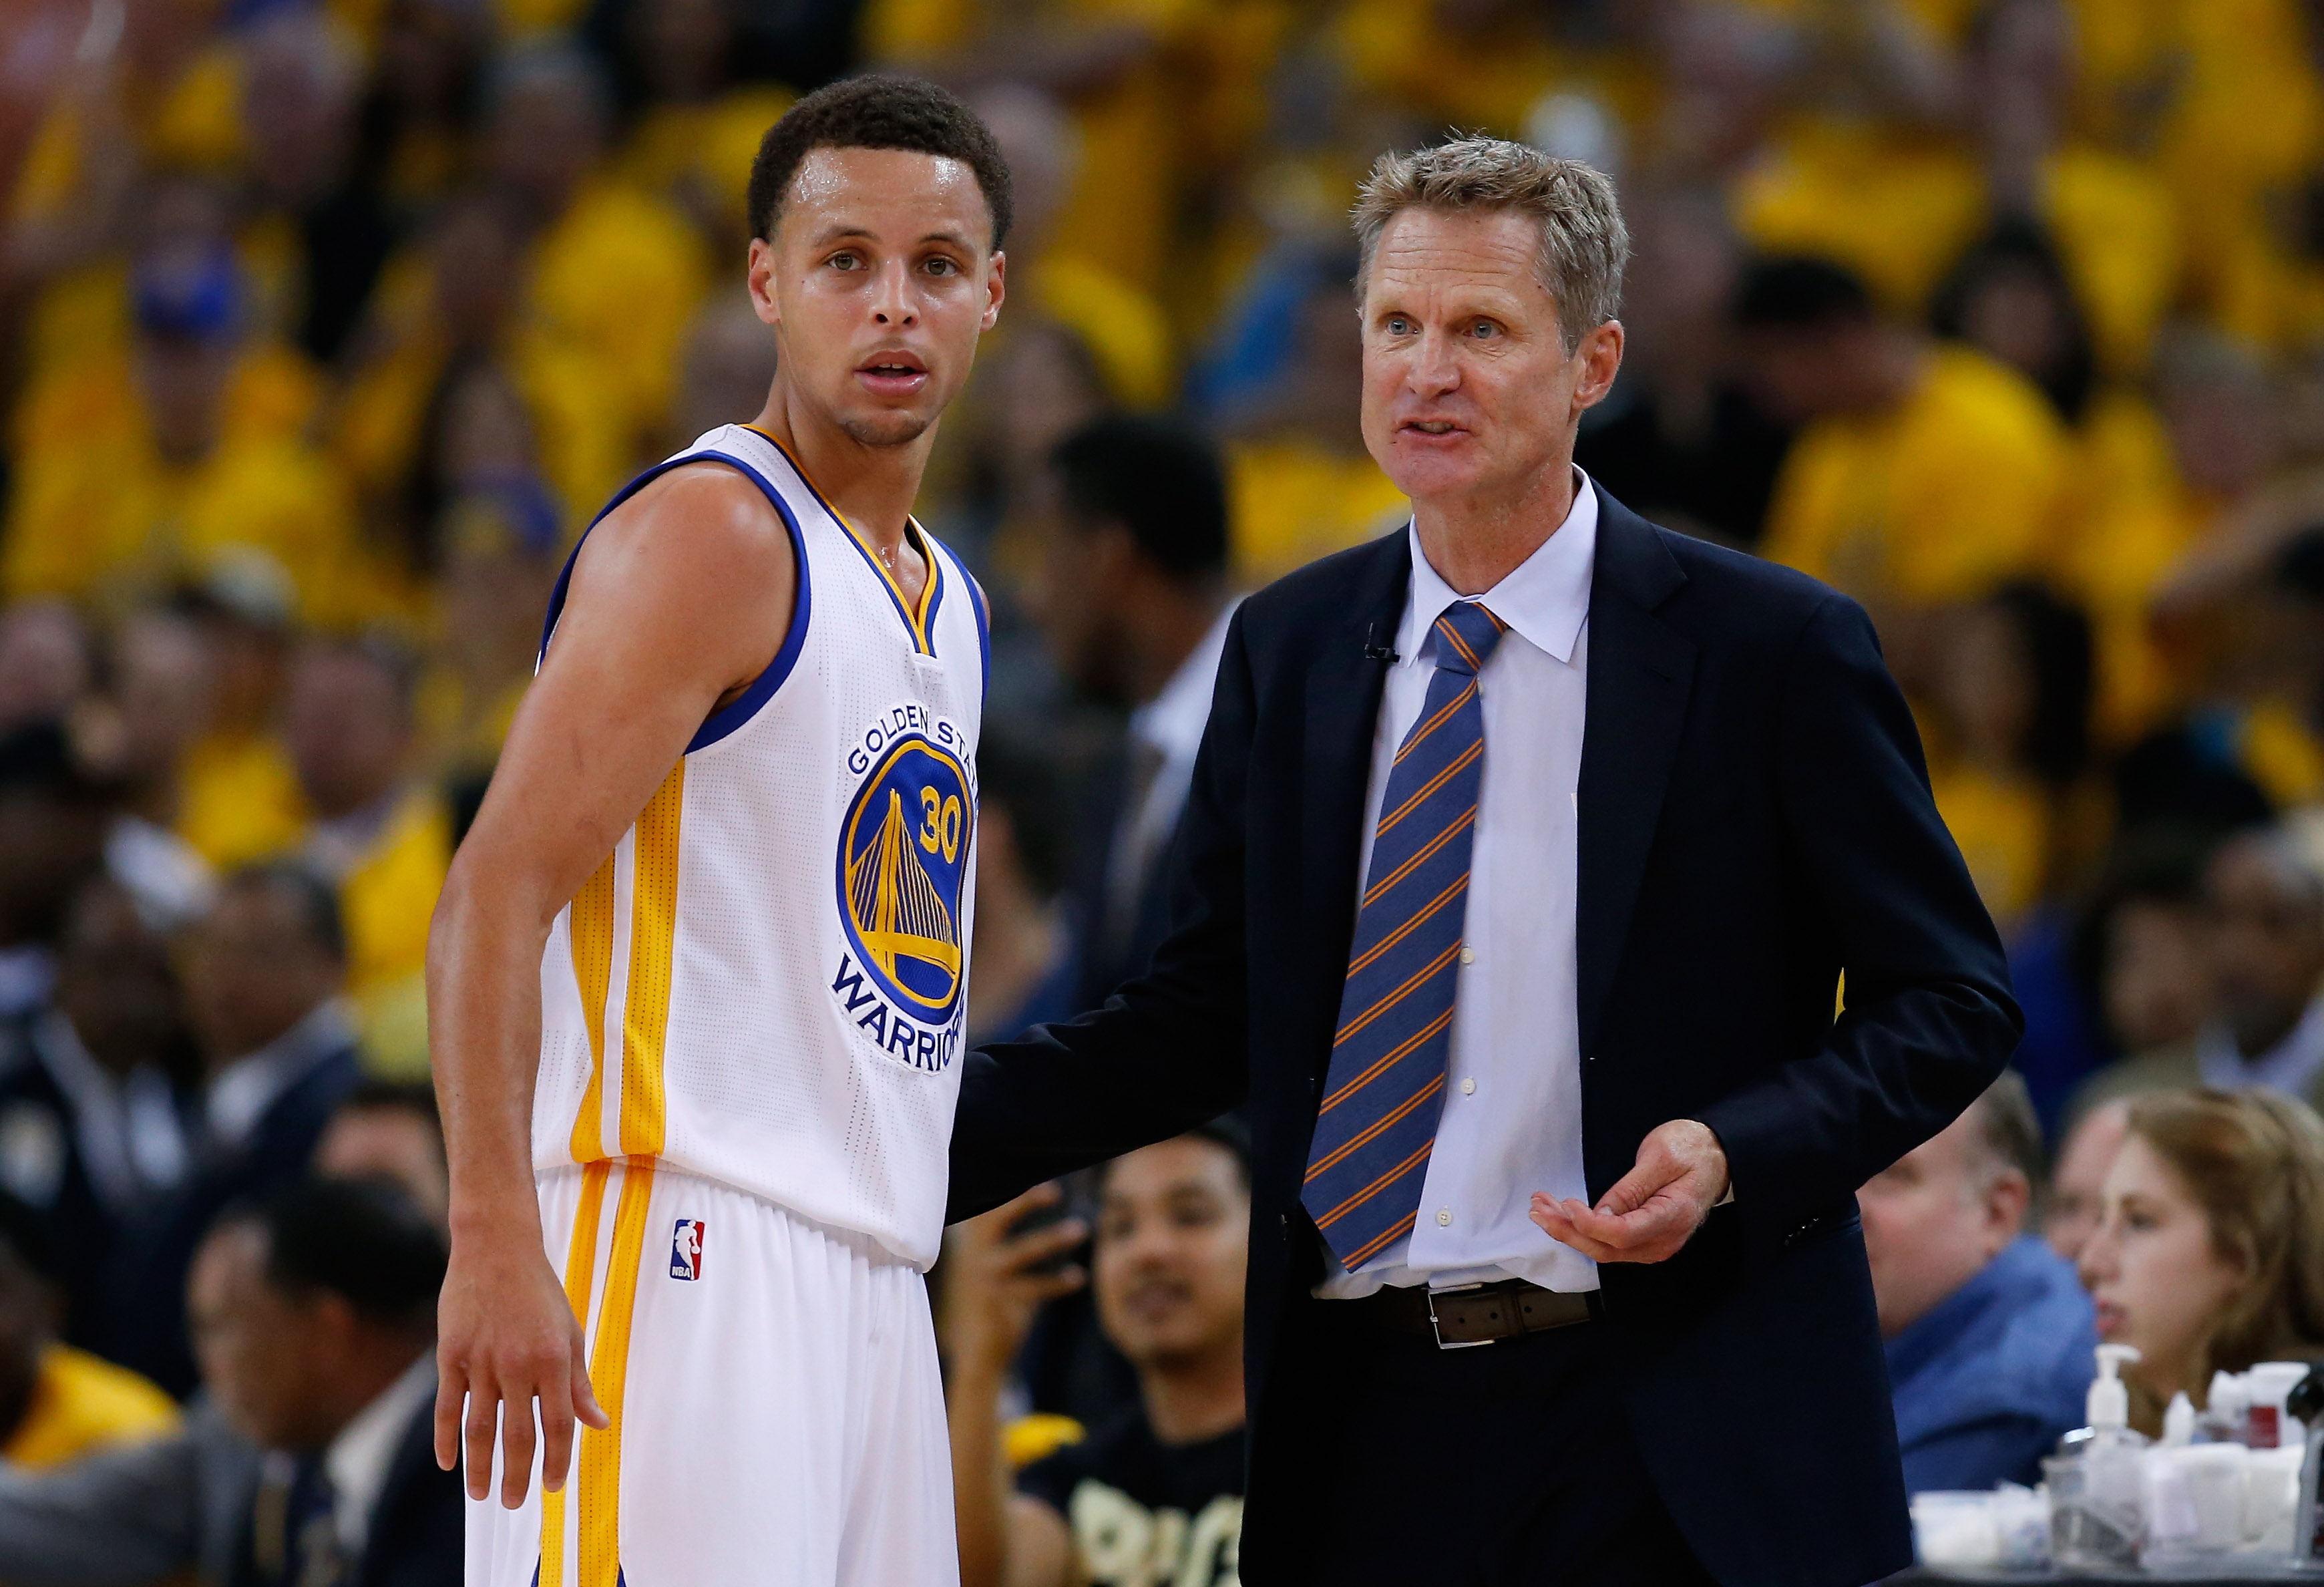 OAKLAND, CA - MAY 03: Head coach Steve Kerr of the Golden State Warriors talks to Stephen Curry #30 during their game against the Memphis Grizzlies during Game One of the Western Conference Semifinals during the NBA Playoffs on May 3, 2015 at Oracle Arena in Oakland, California. NOTE TO USER: User expressly acknowledges and agrees that, by downloading and or using this photograph, User is consenting to the terms and conditions of the Getty Images License Agreement. (Photo by Ezra Shaw/Getty Images)